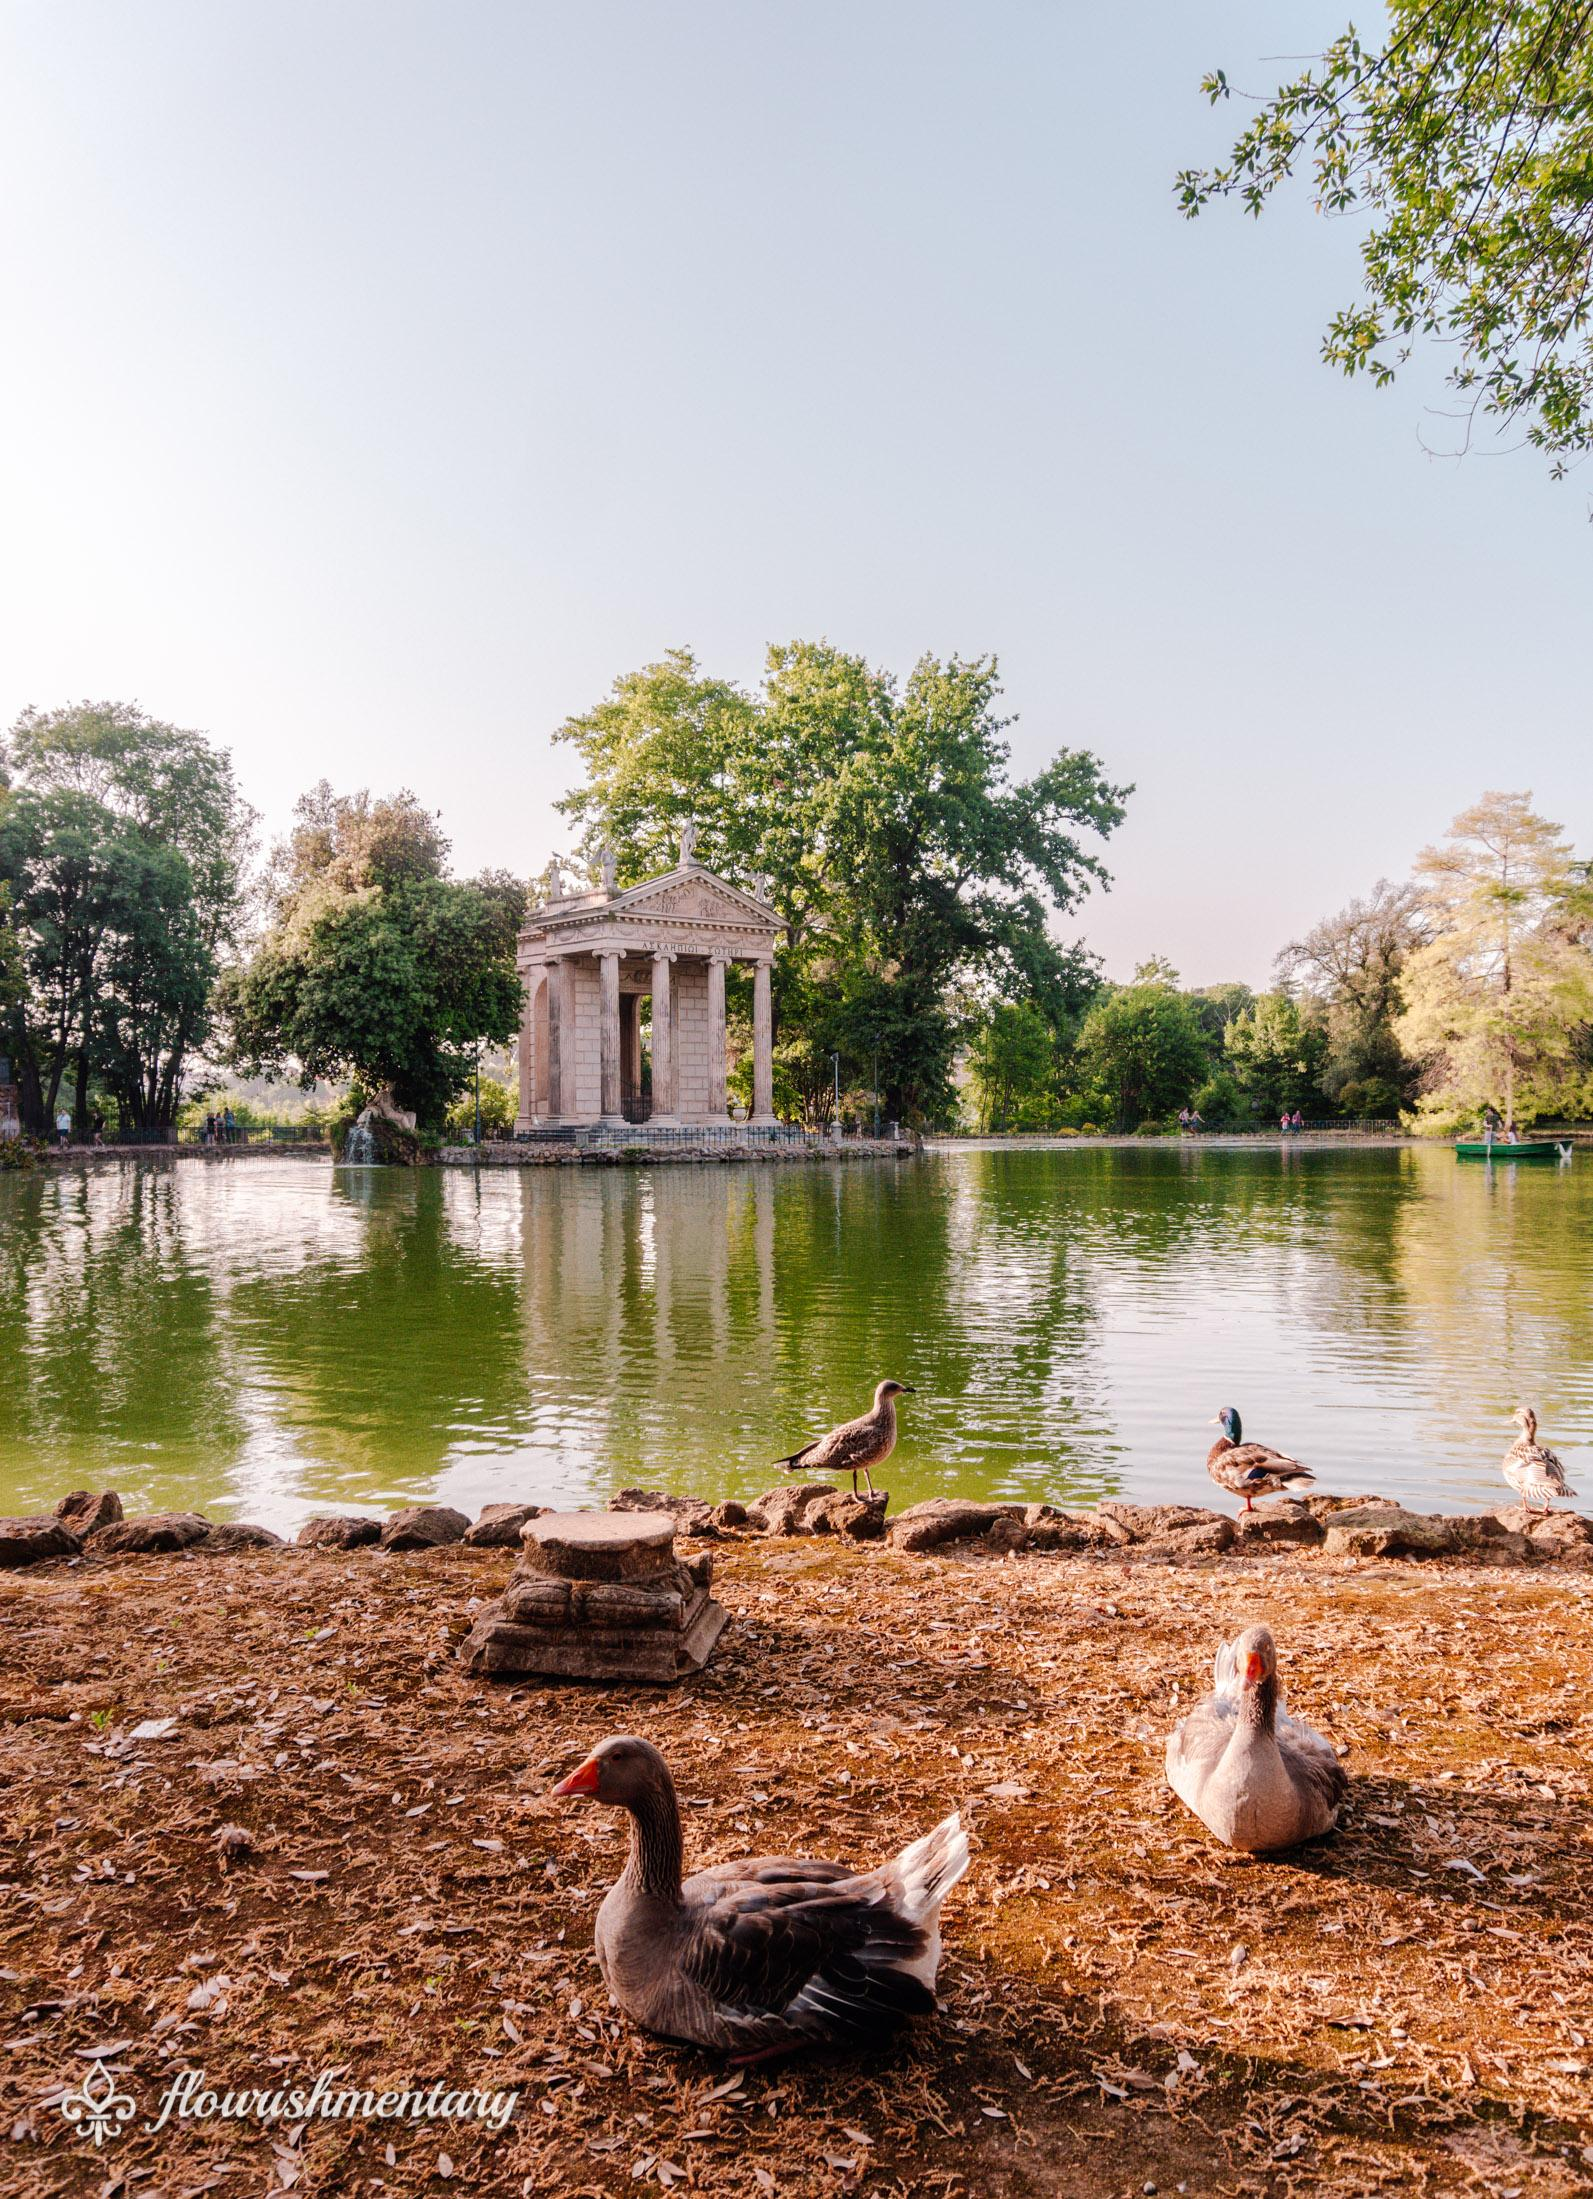 ducks Temple of Aesculapius in Villa Borghese Gardens